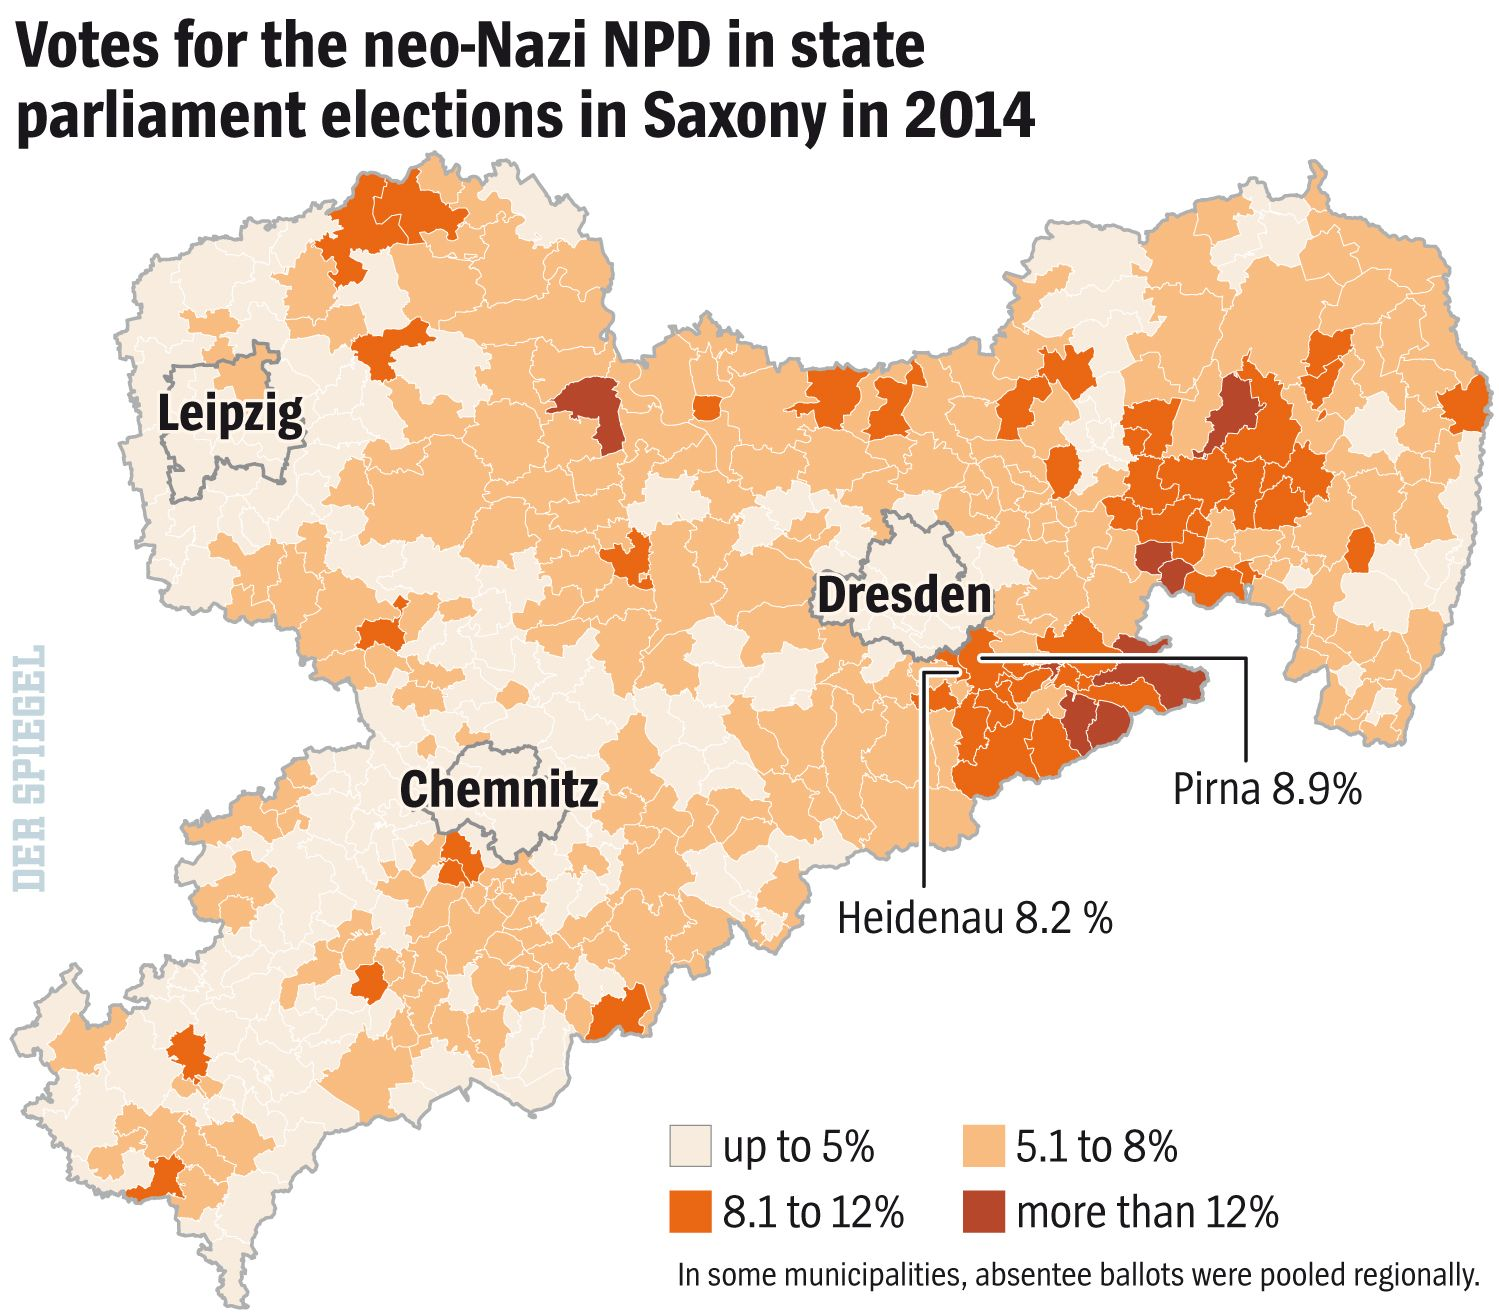 ENGLISH VERSION GRAFIK DER SPIEGEL 36/2015 Seite 32 - Votes for the neo-Nazi NPD